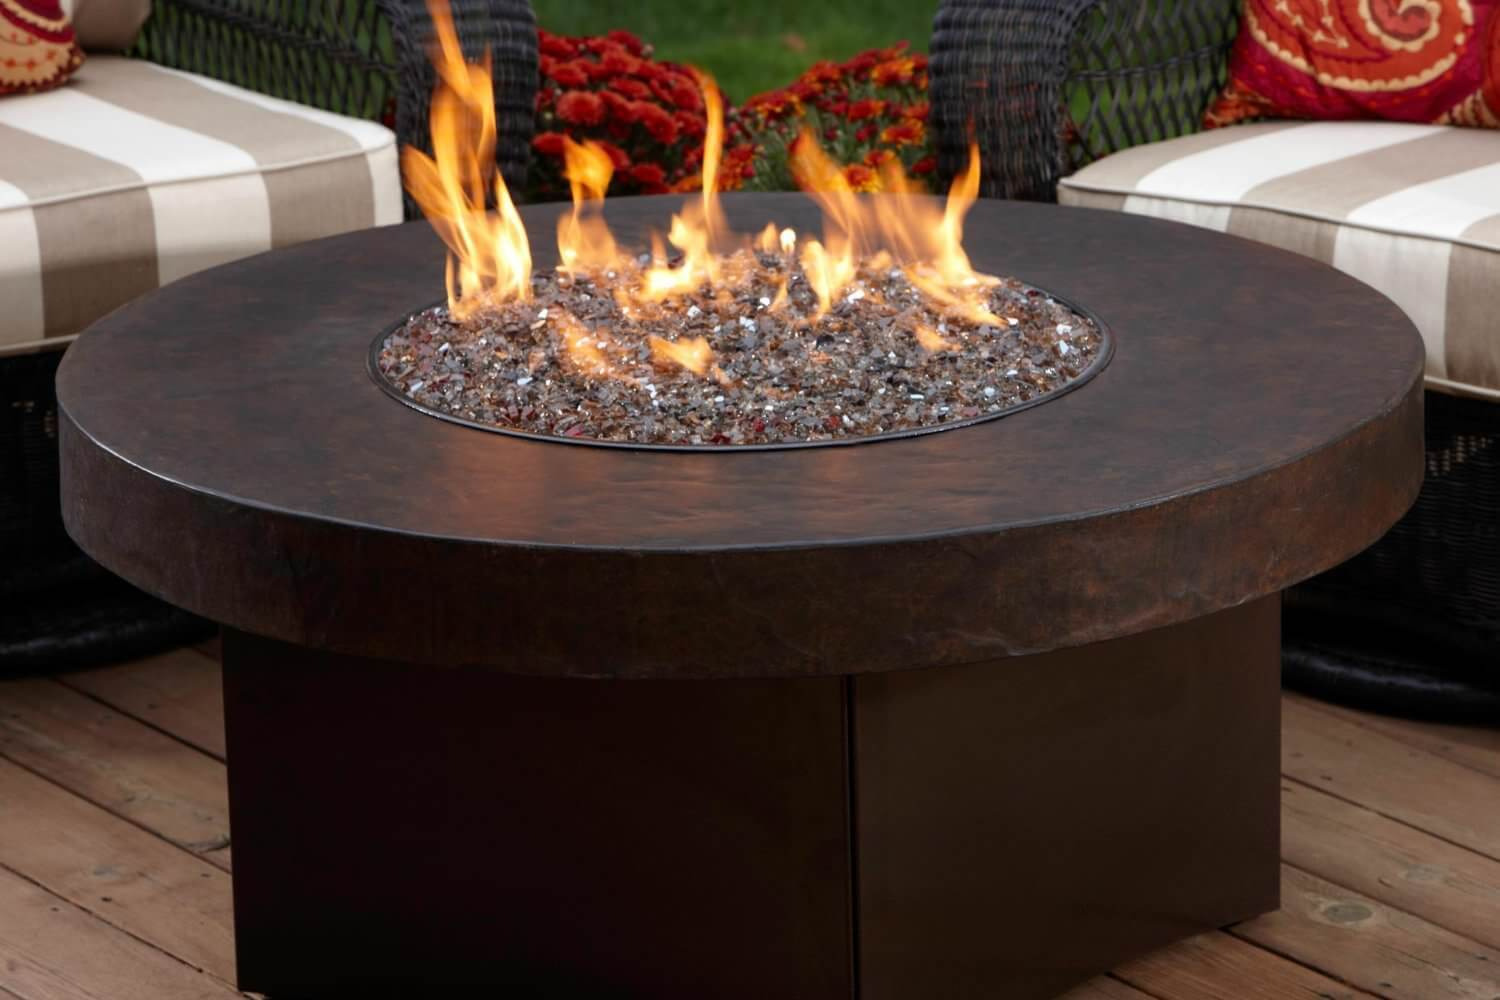 42 Backyard And Patio Fire Pit Ideas pertaining to proportions 1500 X 1000